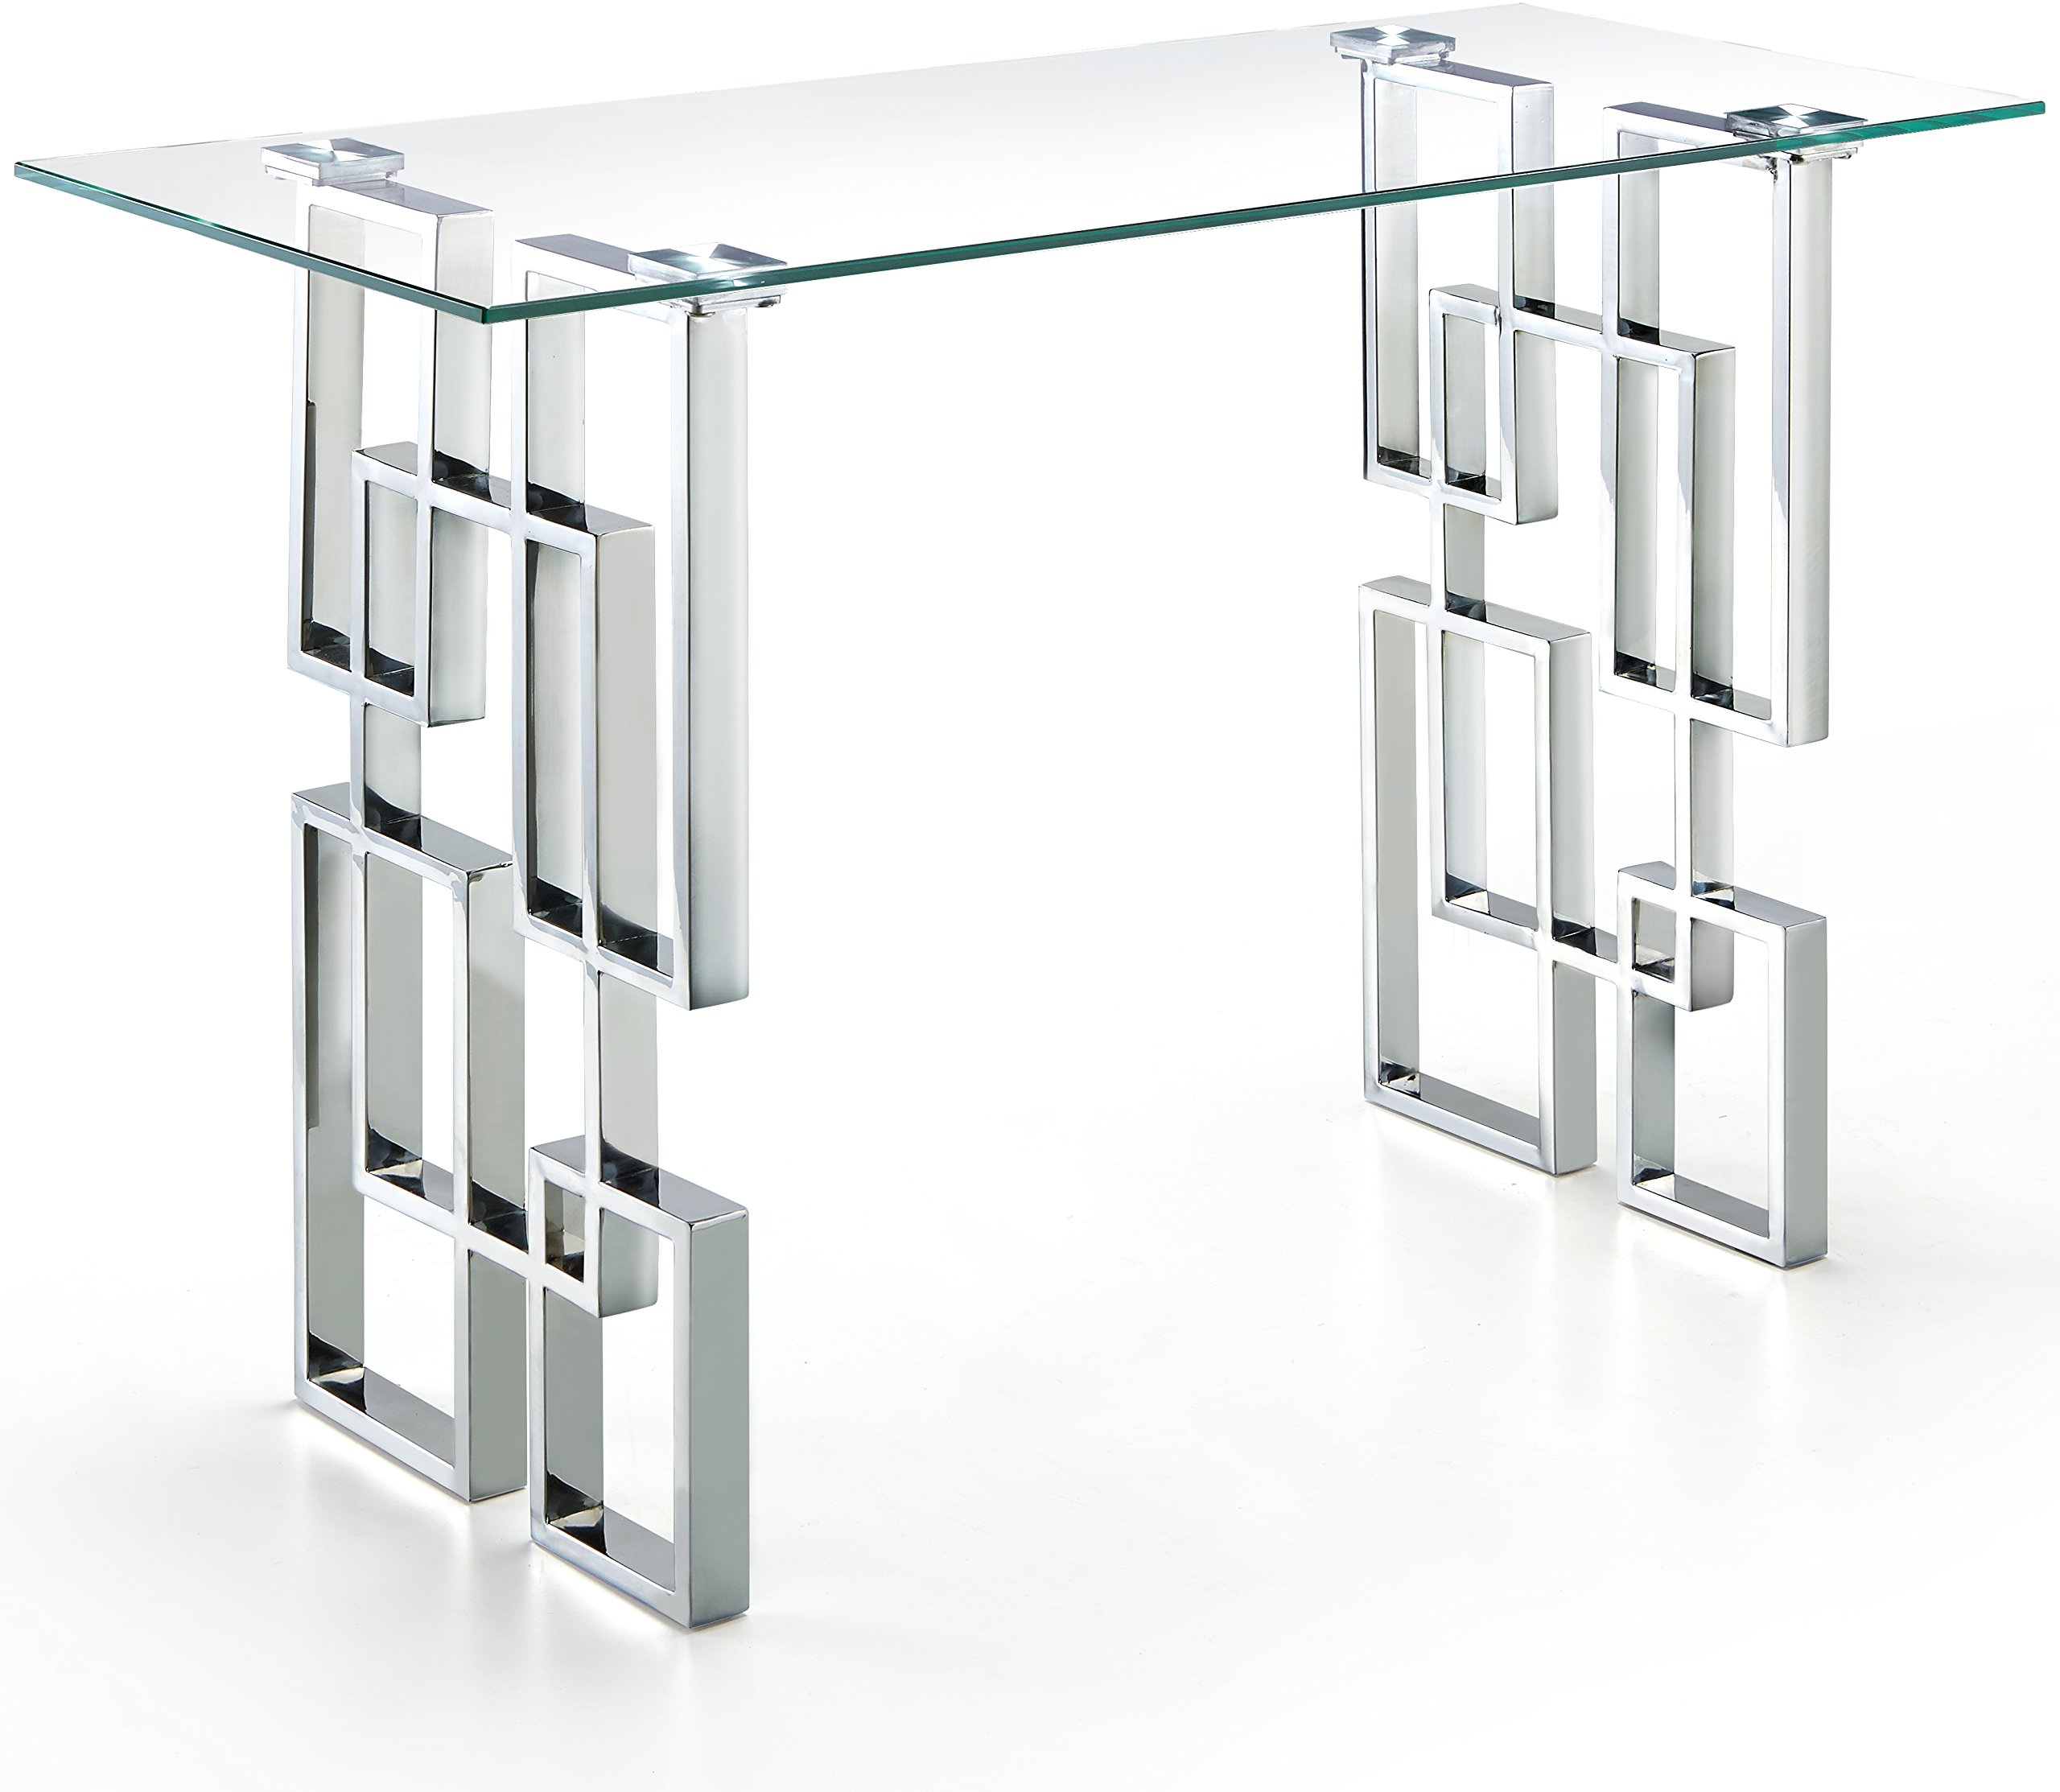 Meridian Furniture Alexis Collection Modern | Contemporary Glass Top Console Table with Stainless Steel base in Polished Chrome Finish, 48'' W x 14'' D x 30'' H, silver by Meridian Furniture